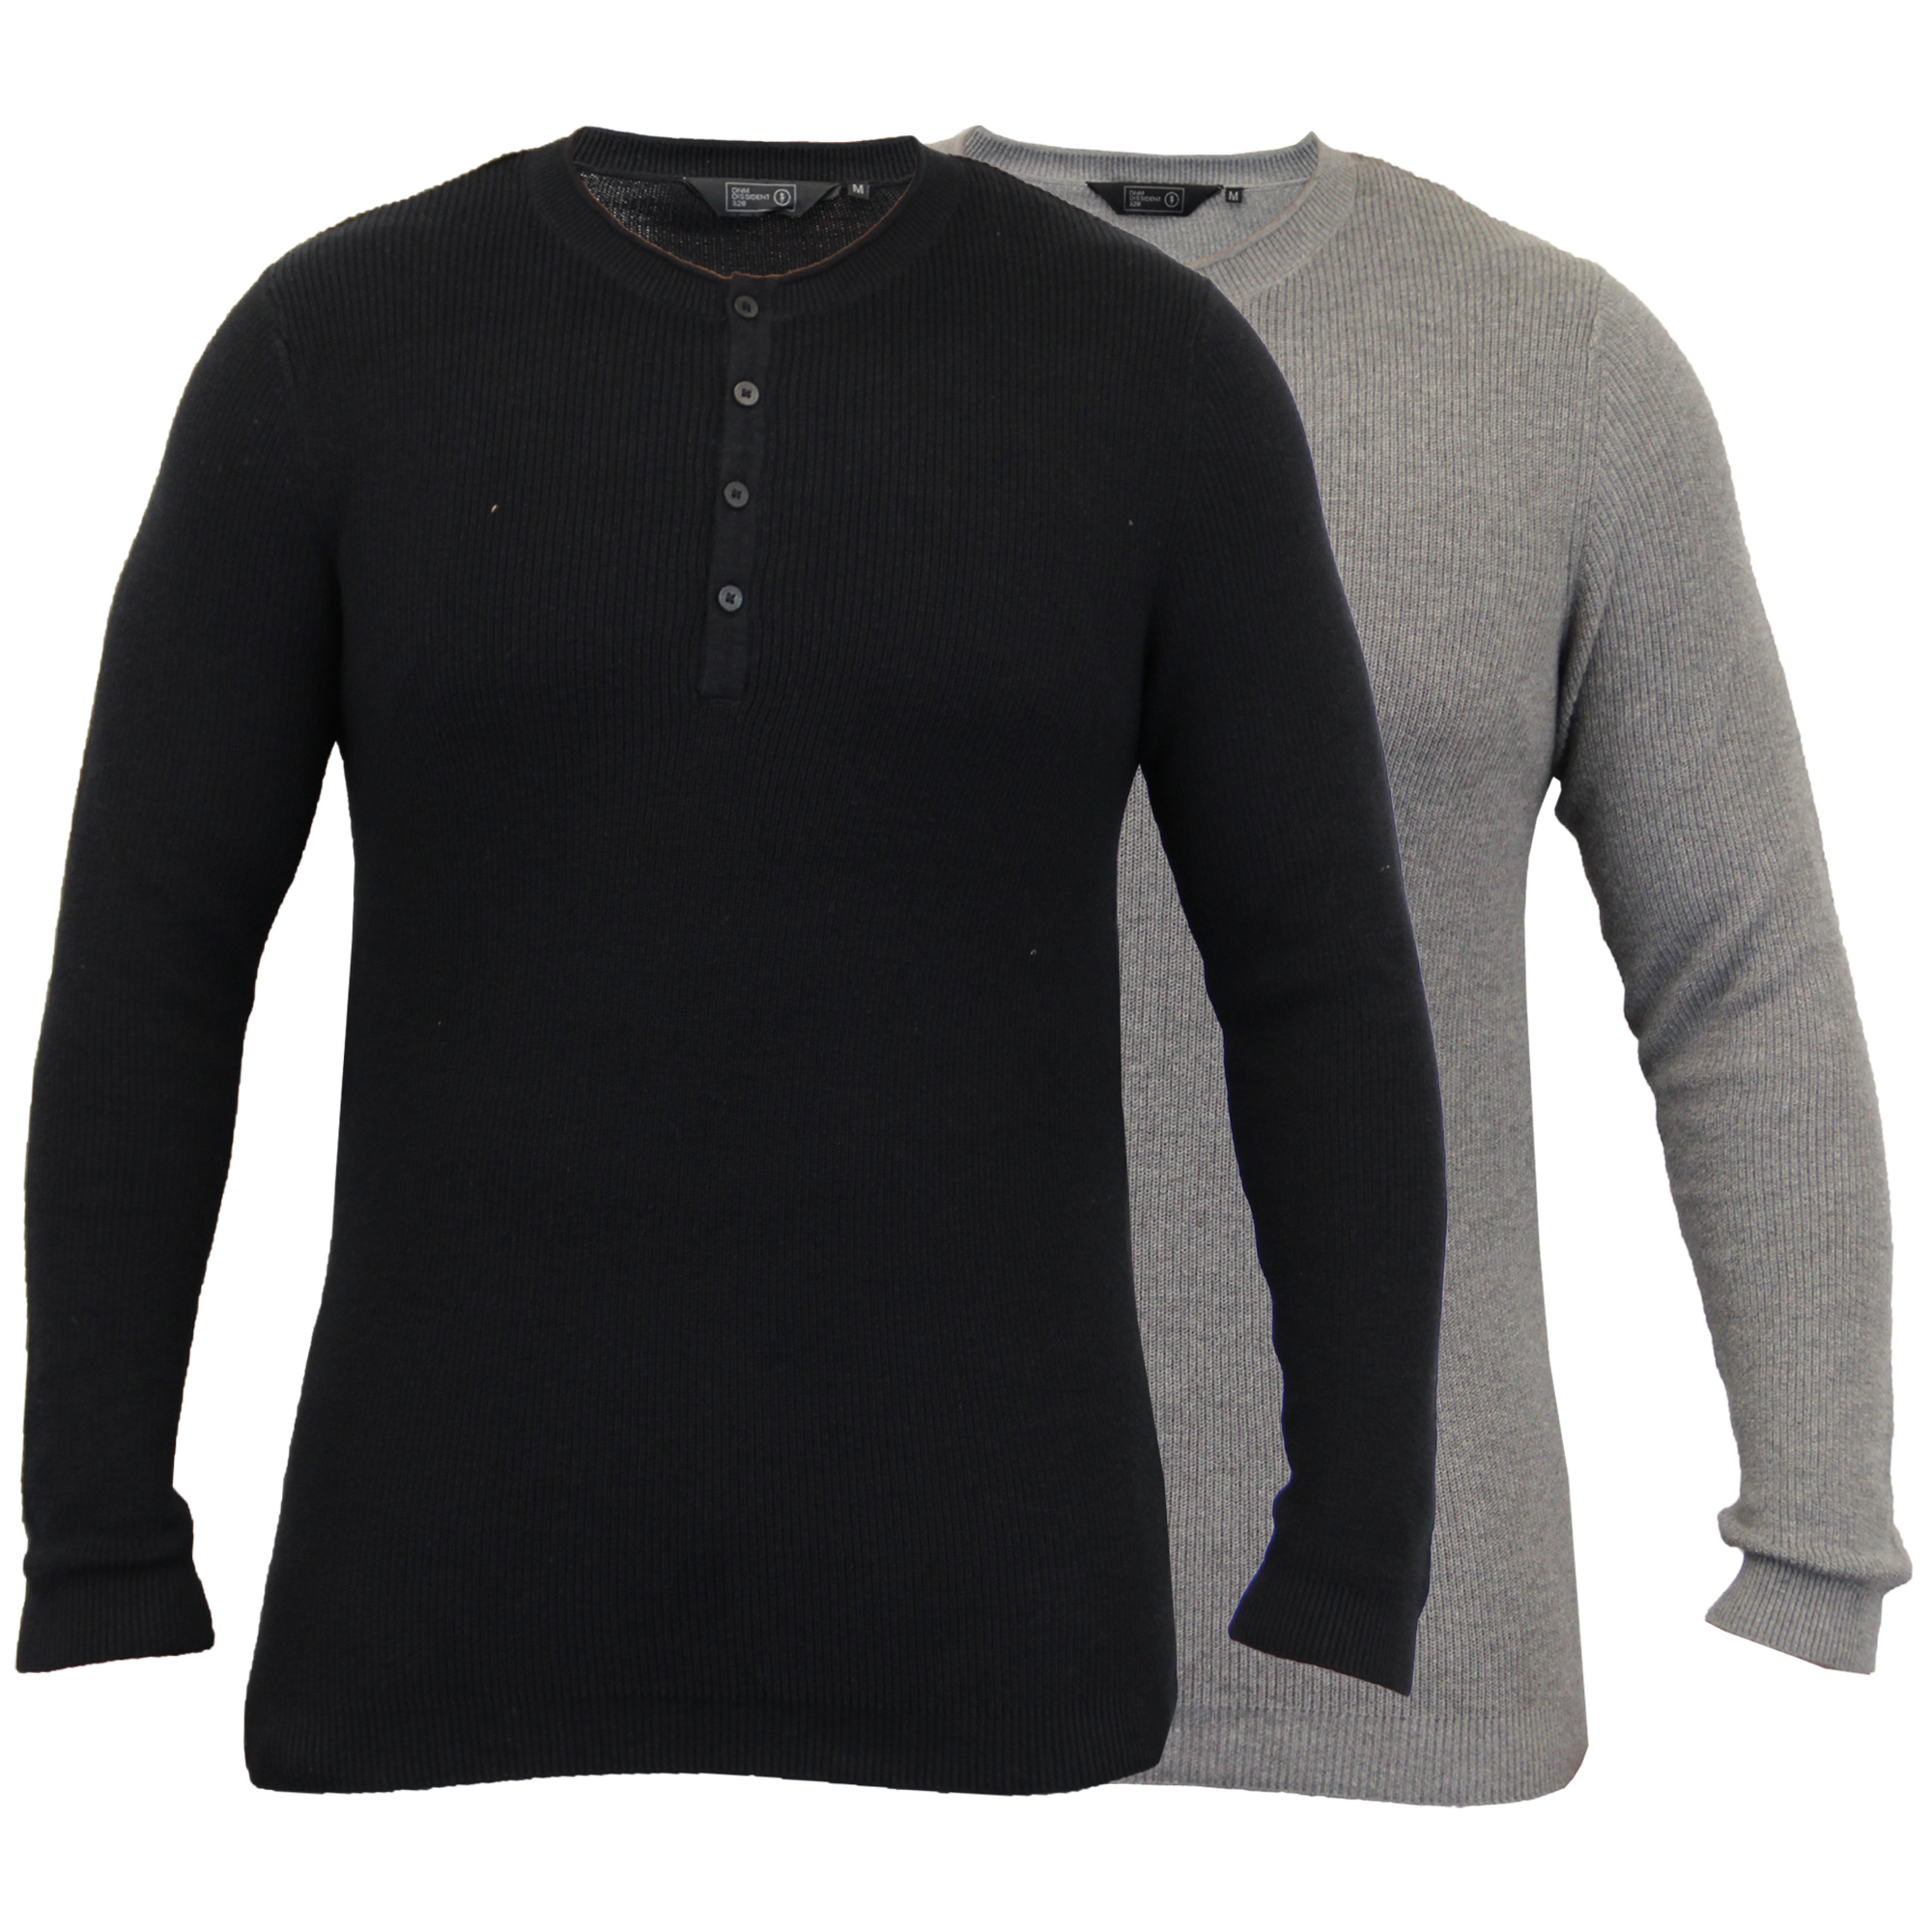 Mens-Grandad-Jumpers-Dissident-Knitted-Ribbed-Top-Lightweight-Casual-Winter-New thumbnail 5